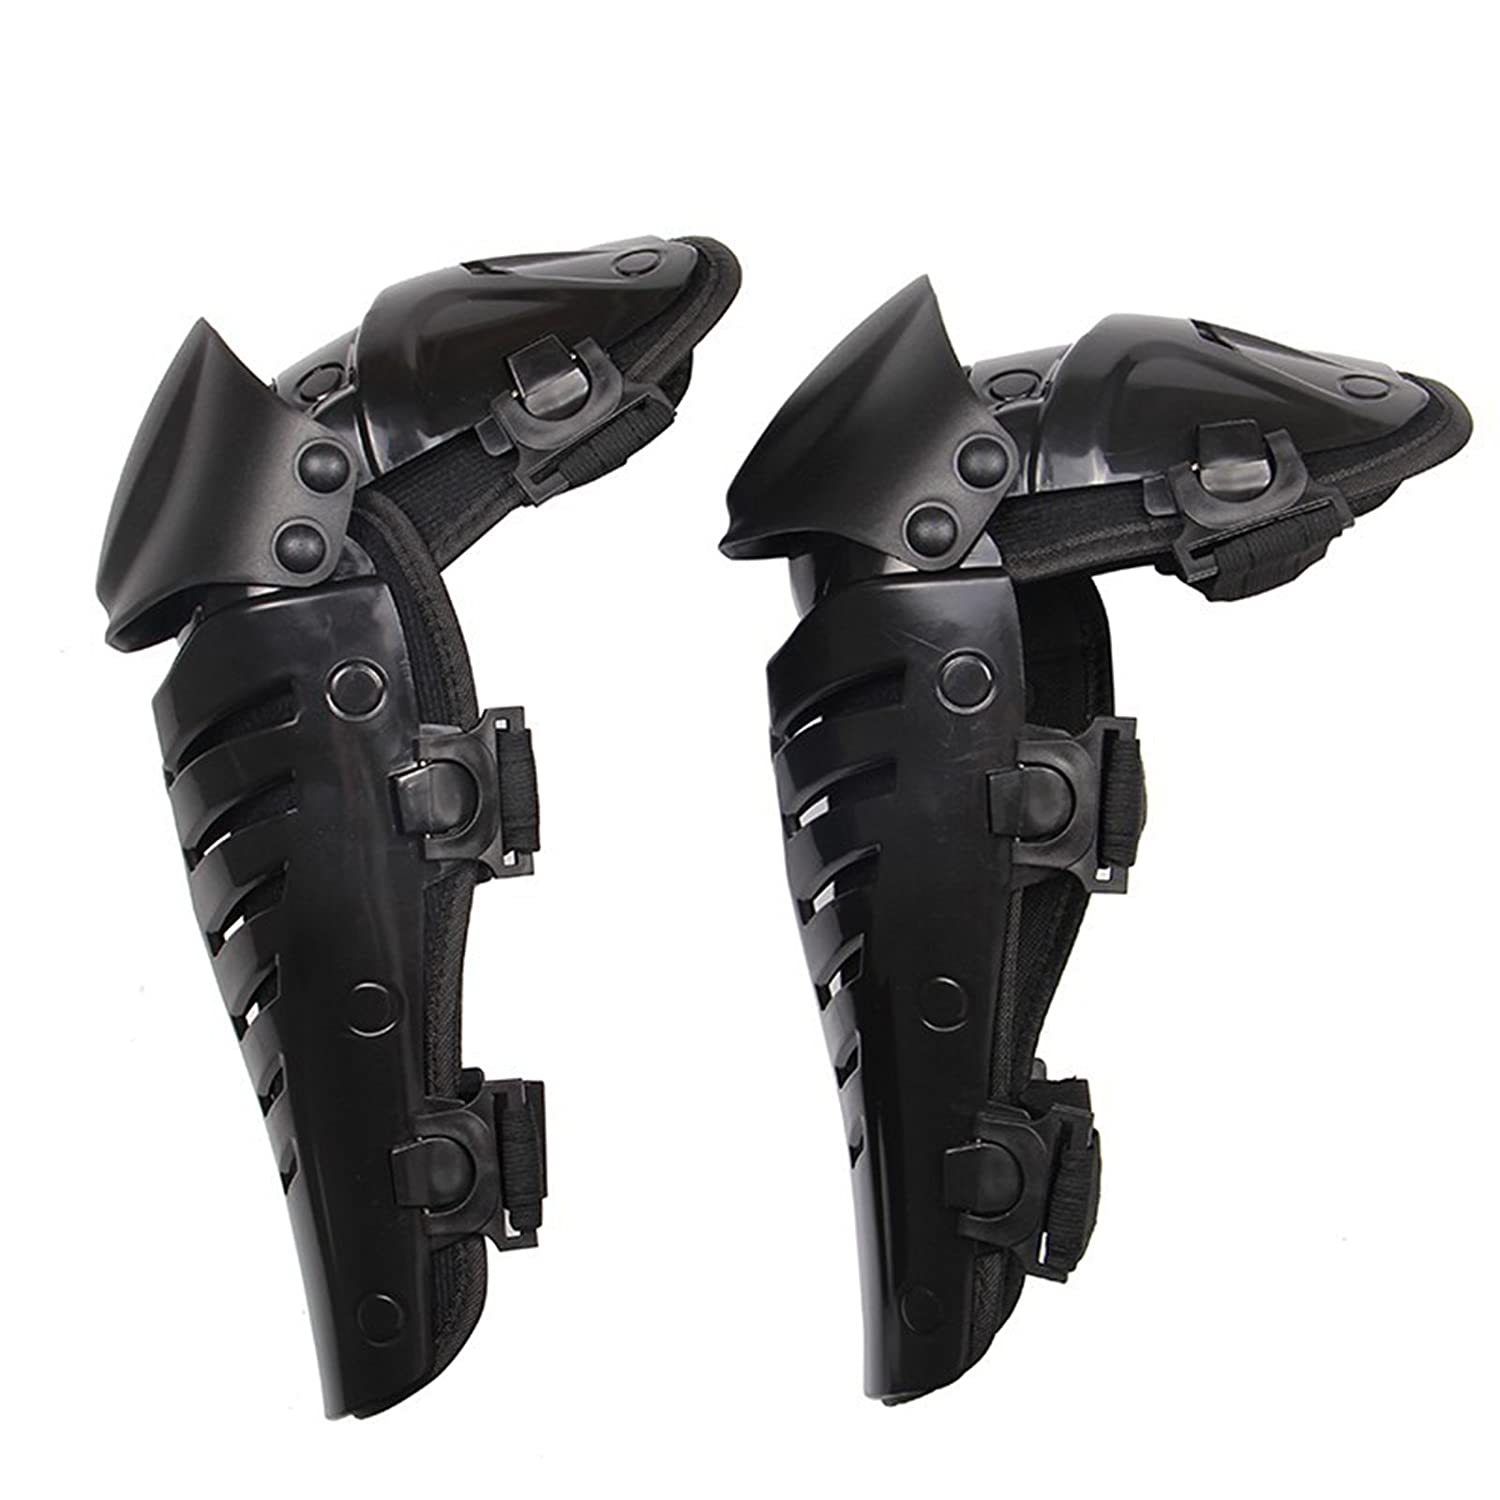 BARHAR 1 Pair of Adults Fashion Knee Shin Armor Protect Guard Pads Accessories with Plastic Cement Hook for Motorcycle Motocross Racing